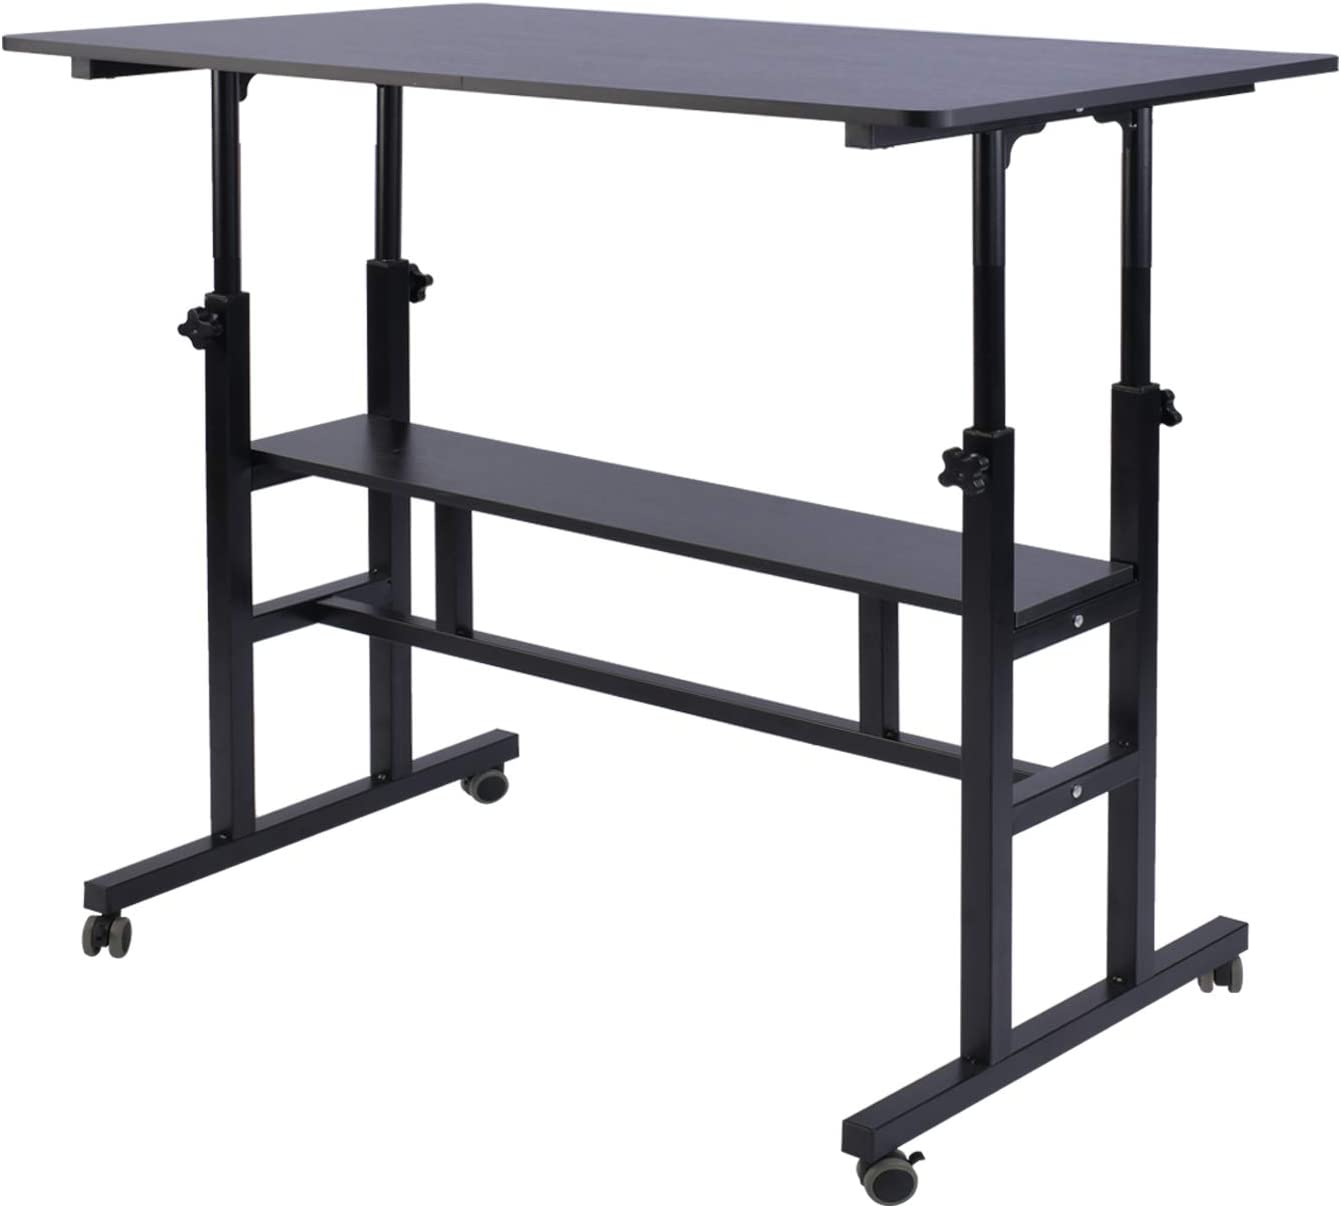 "AIZ Mobile Standing Desk, Adjustable Computer Desk Rolling Laptop Cart on Wheels Home Office Computer Workstation, Portable Laptop Stand Tall Table for Standing or Sitting, Black 31.5"" x 19.7"""